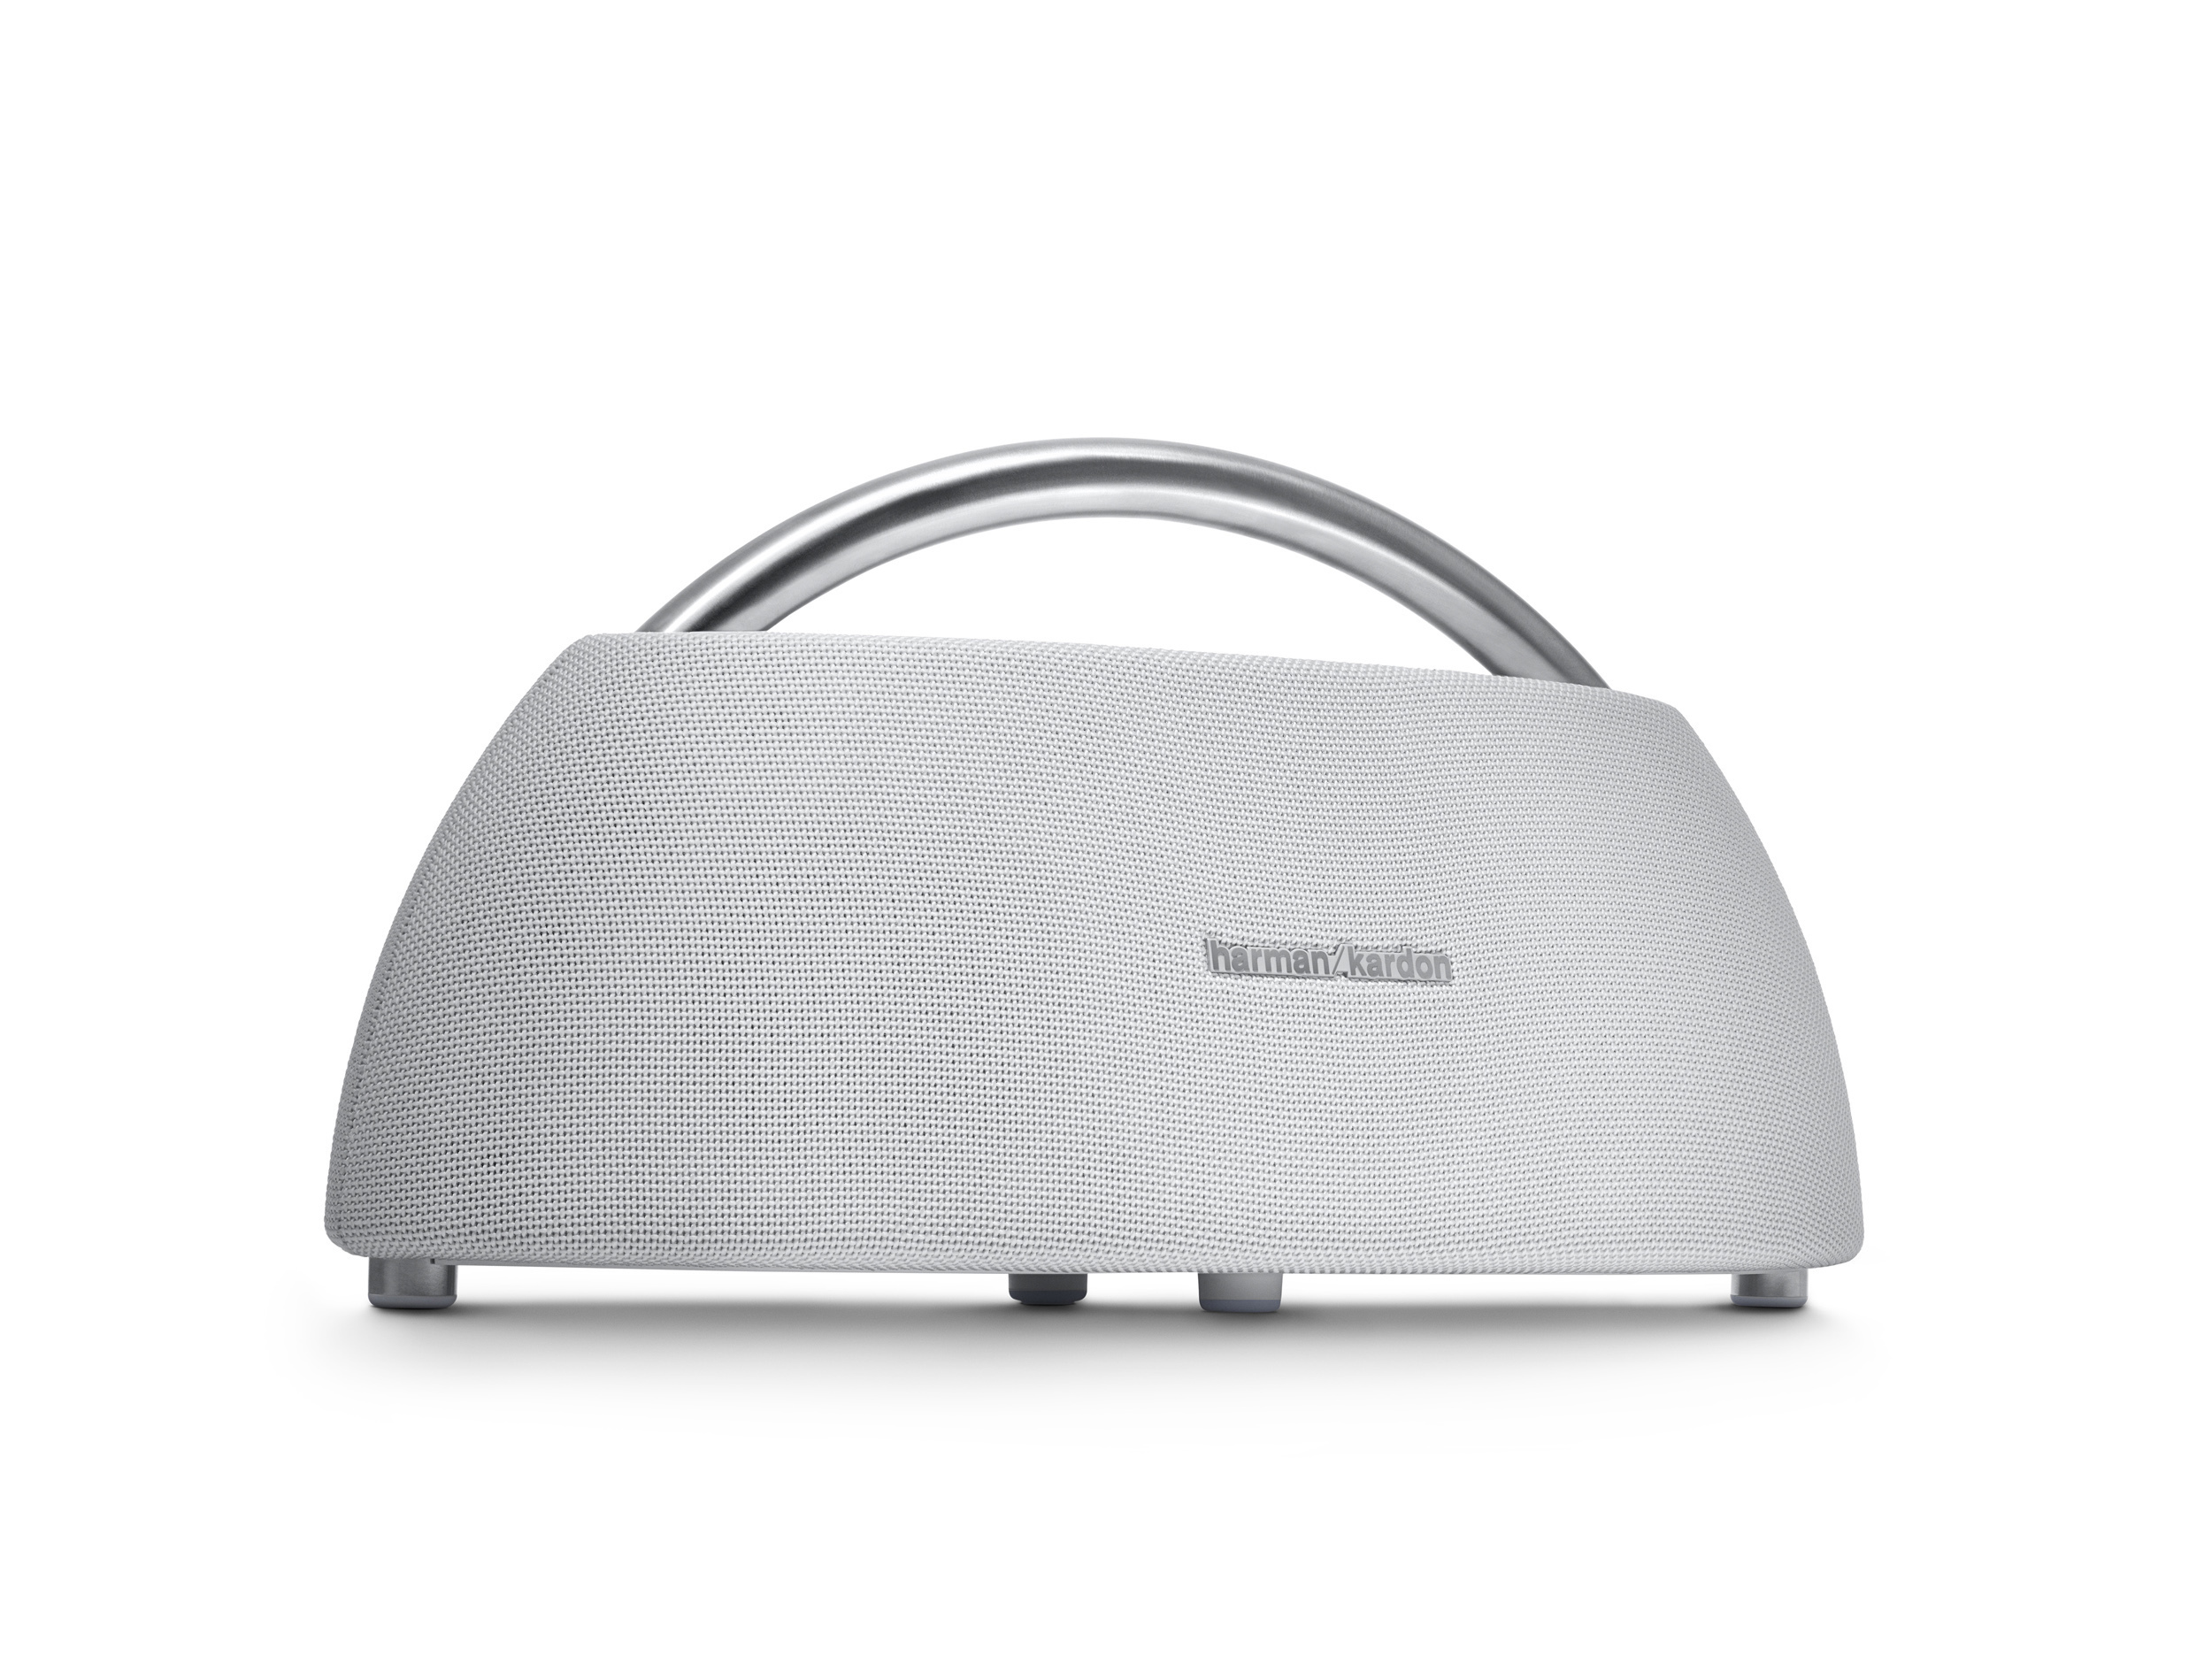 Harman kardon go play draadloze draagbare ls bat bt wit art